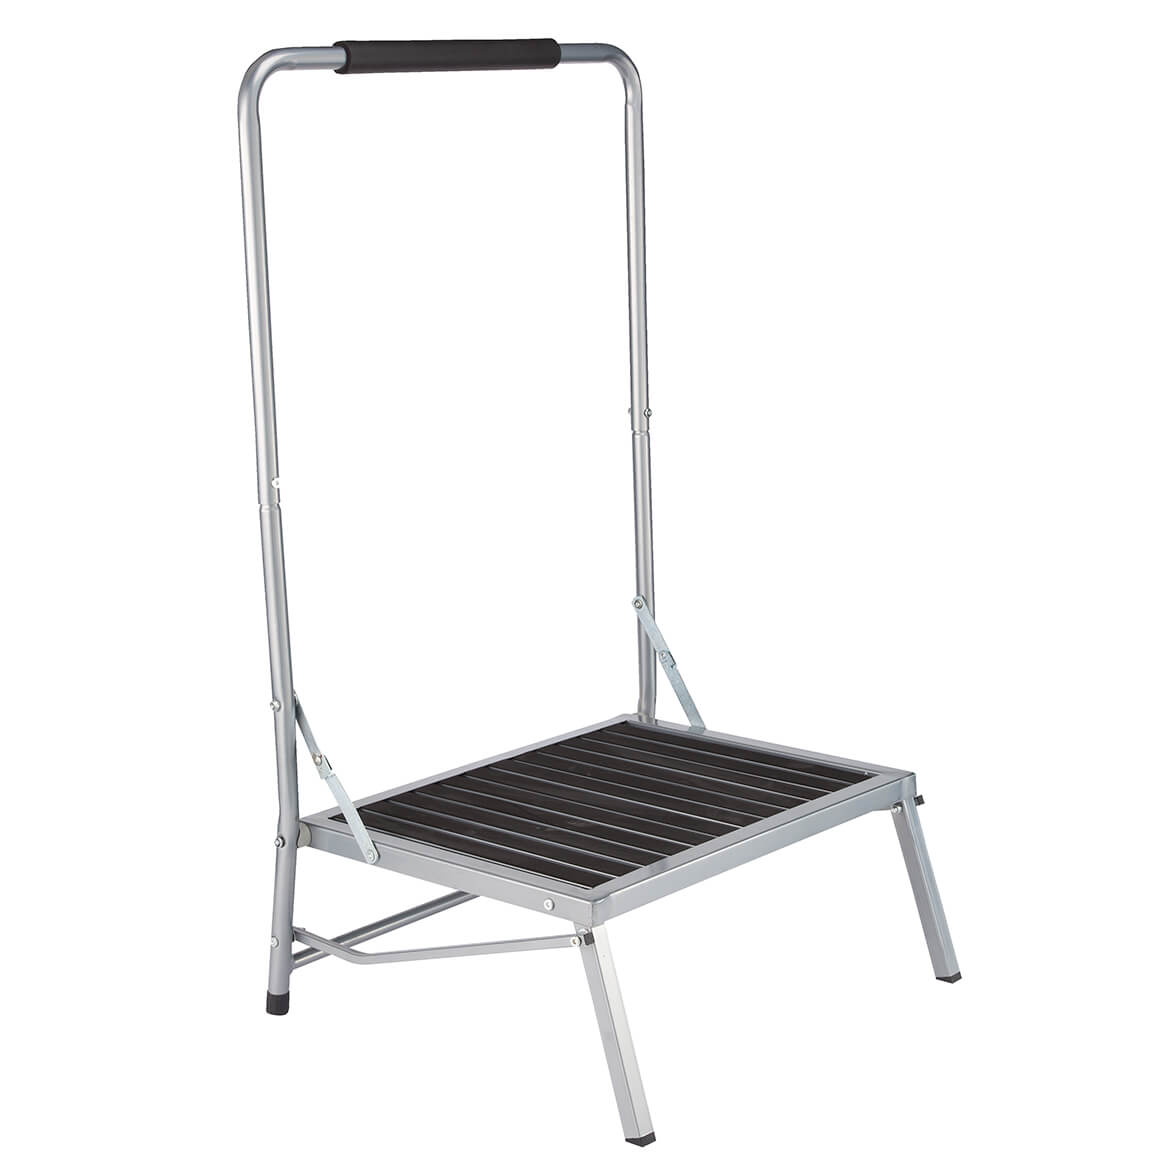 Folding Step Stool With Handle For Elderly Or Disabled